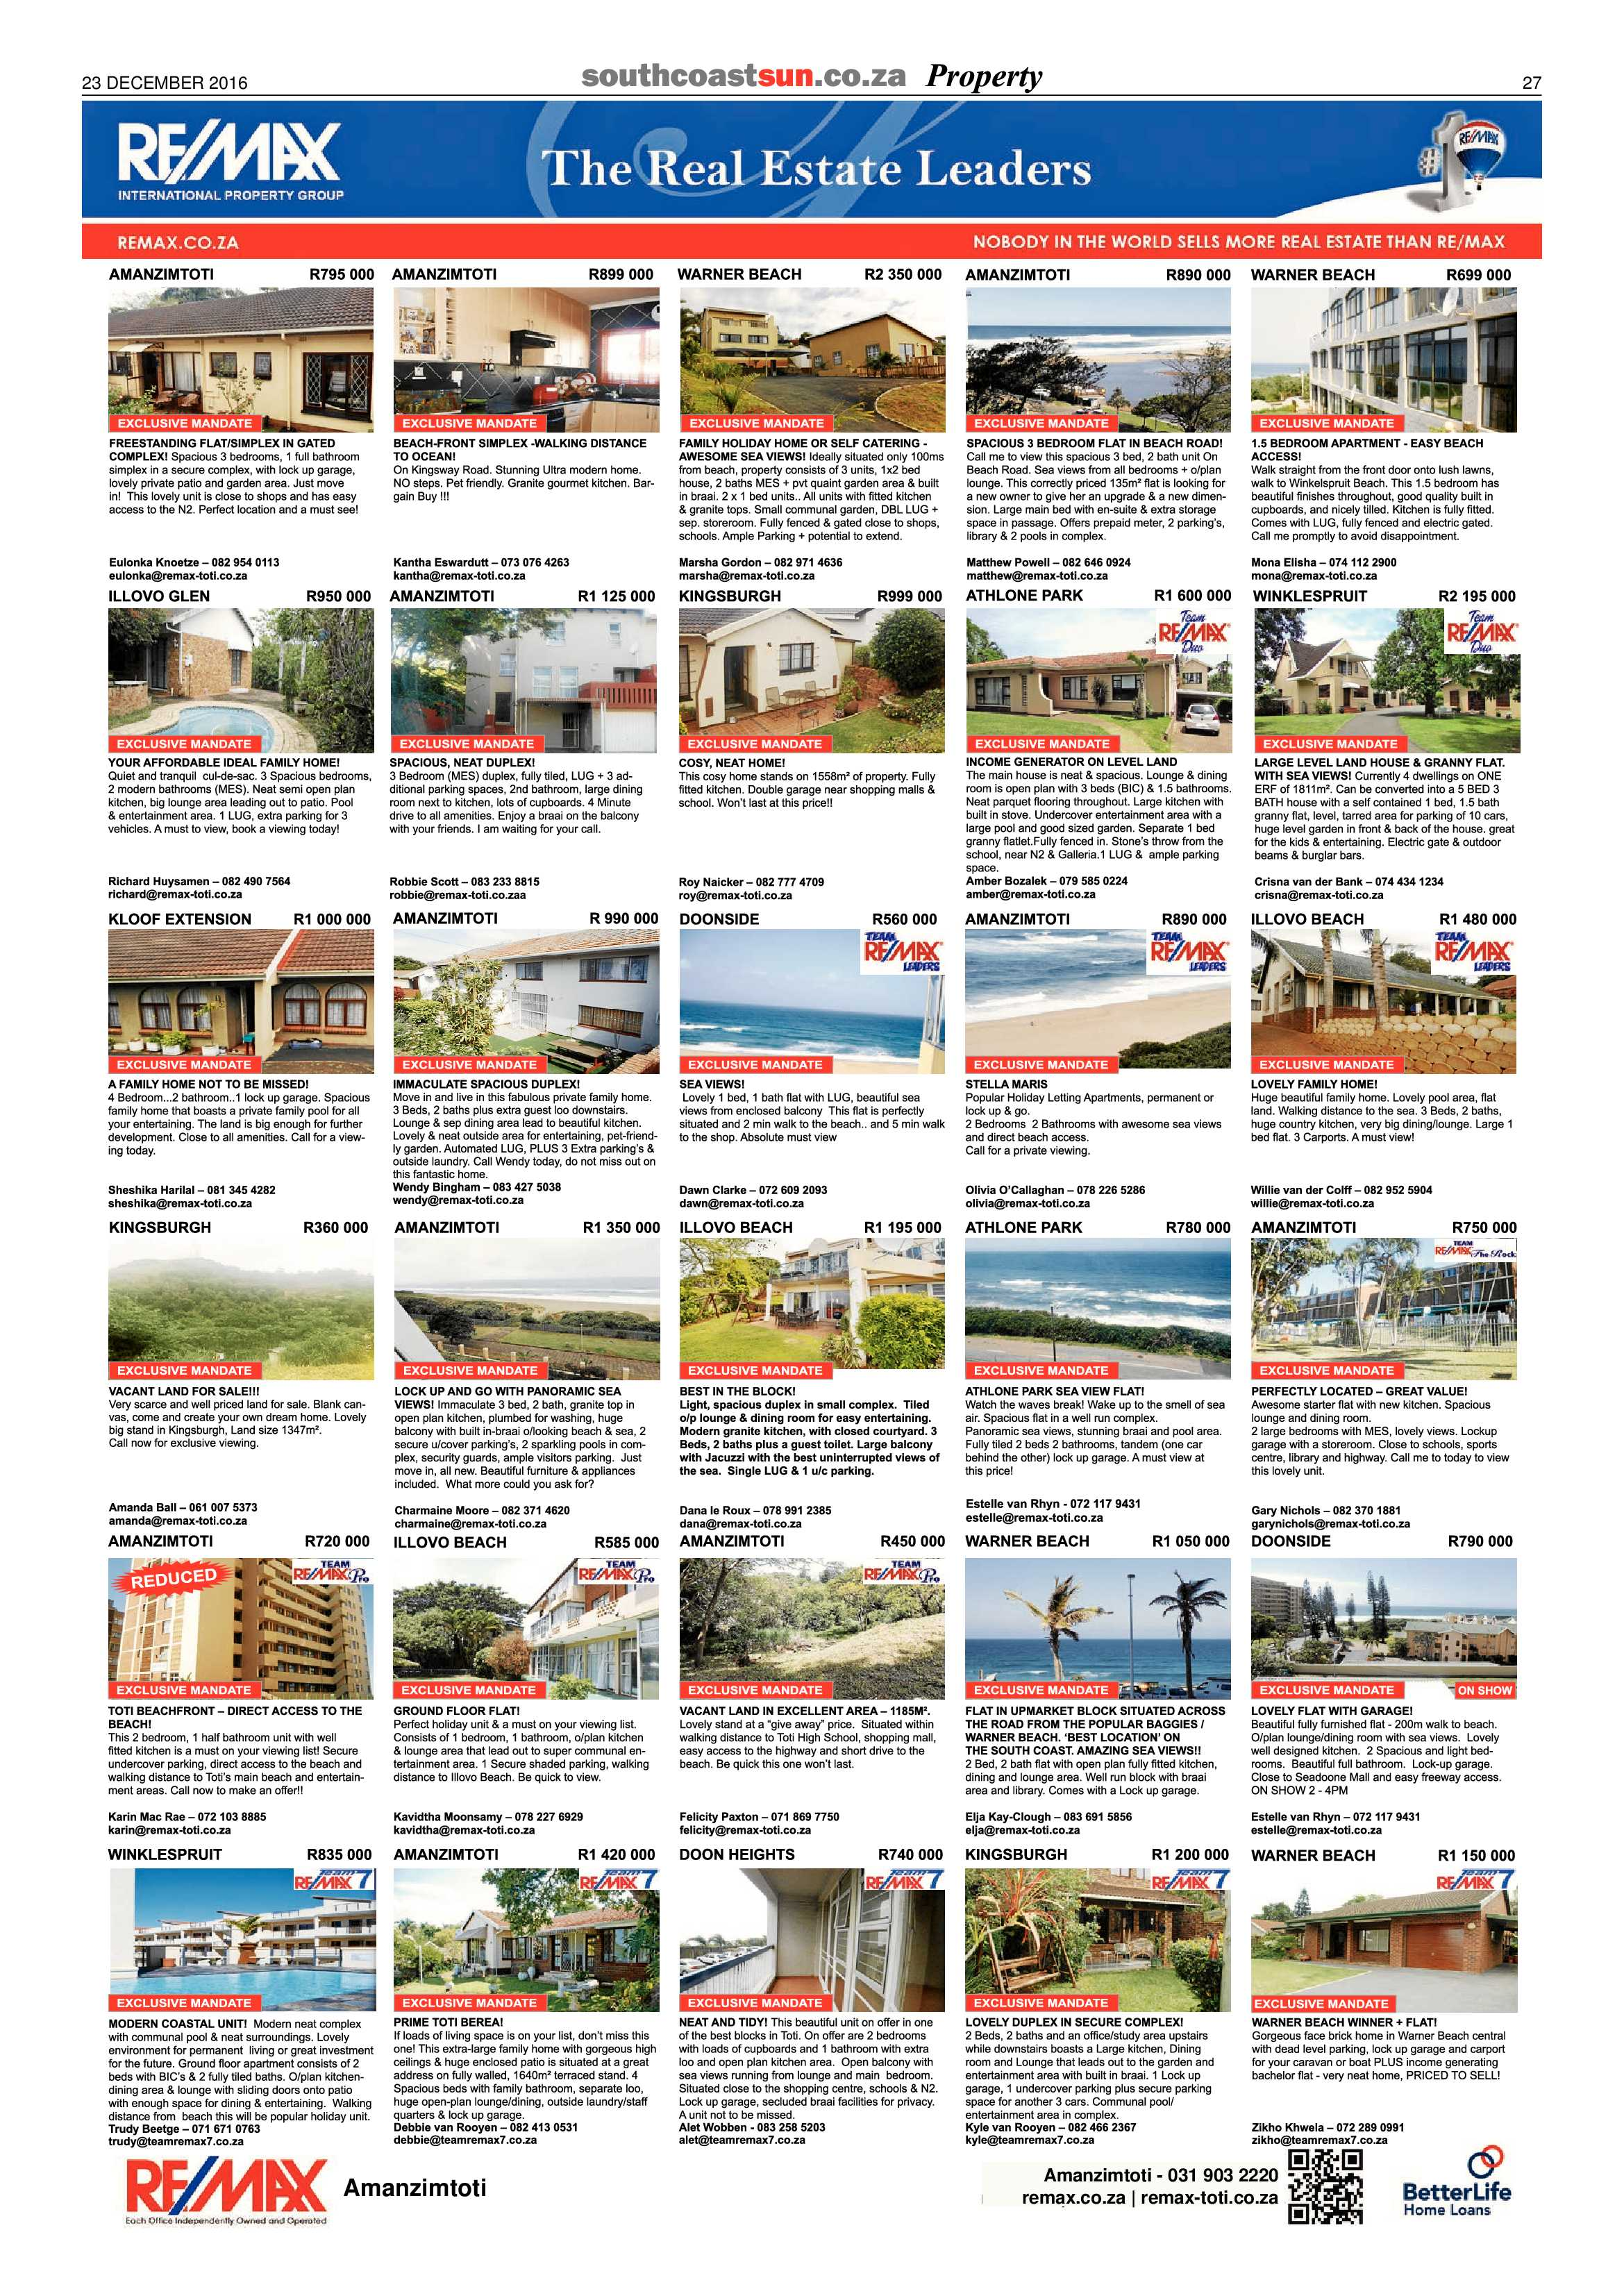 23-december-2016-epapers-page-27